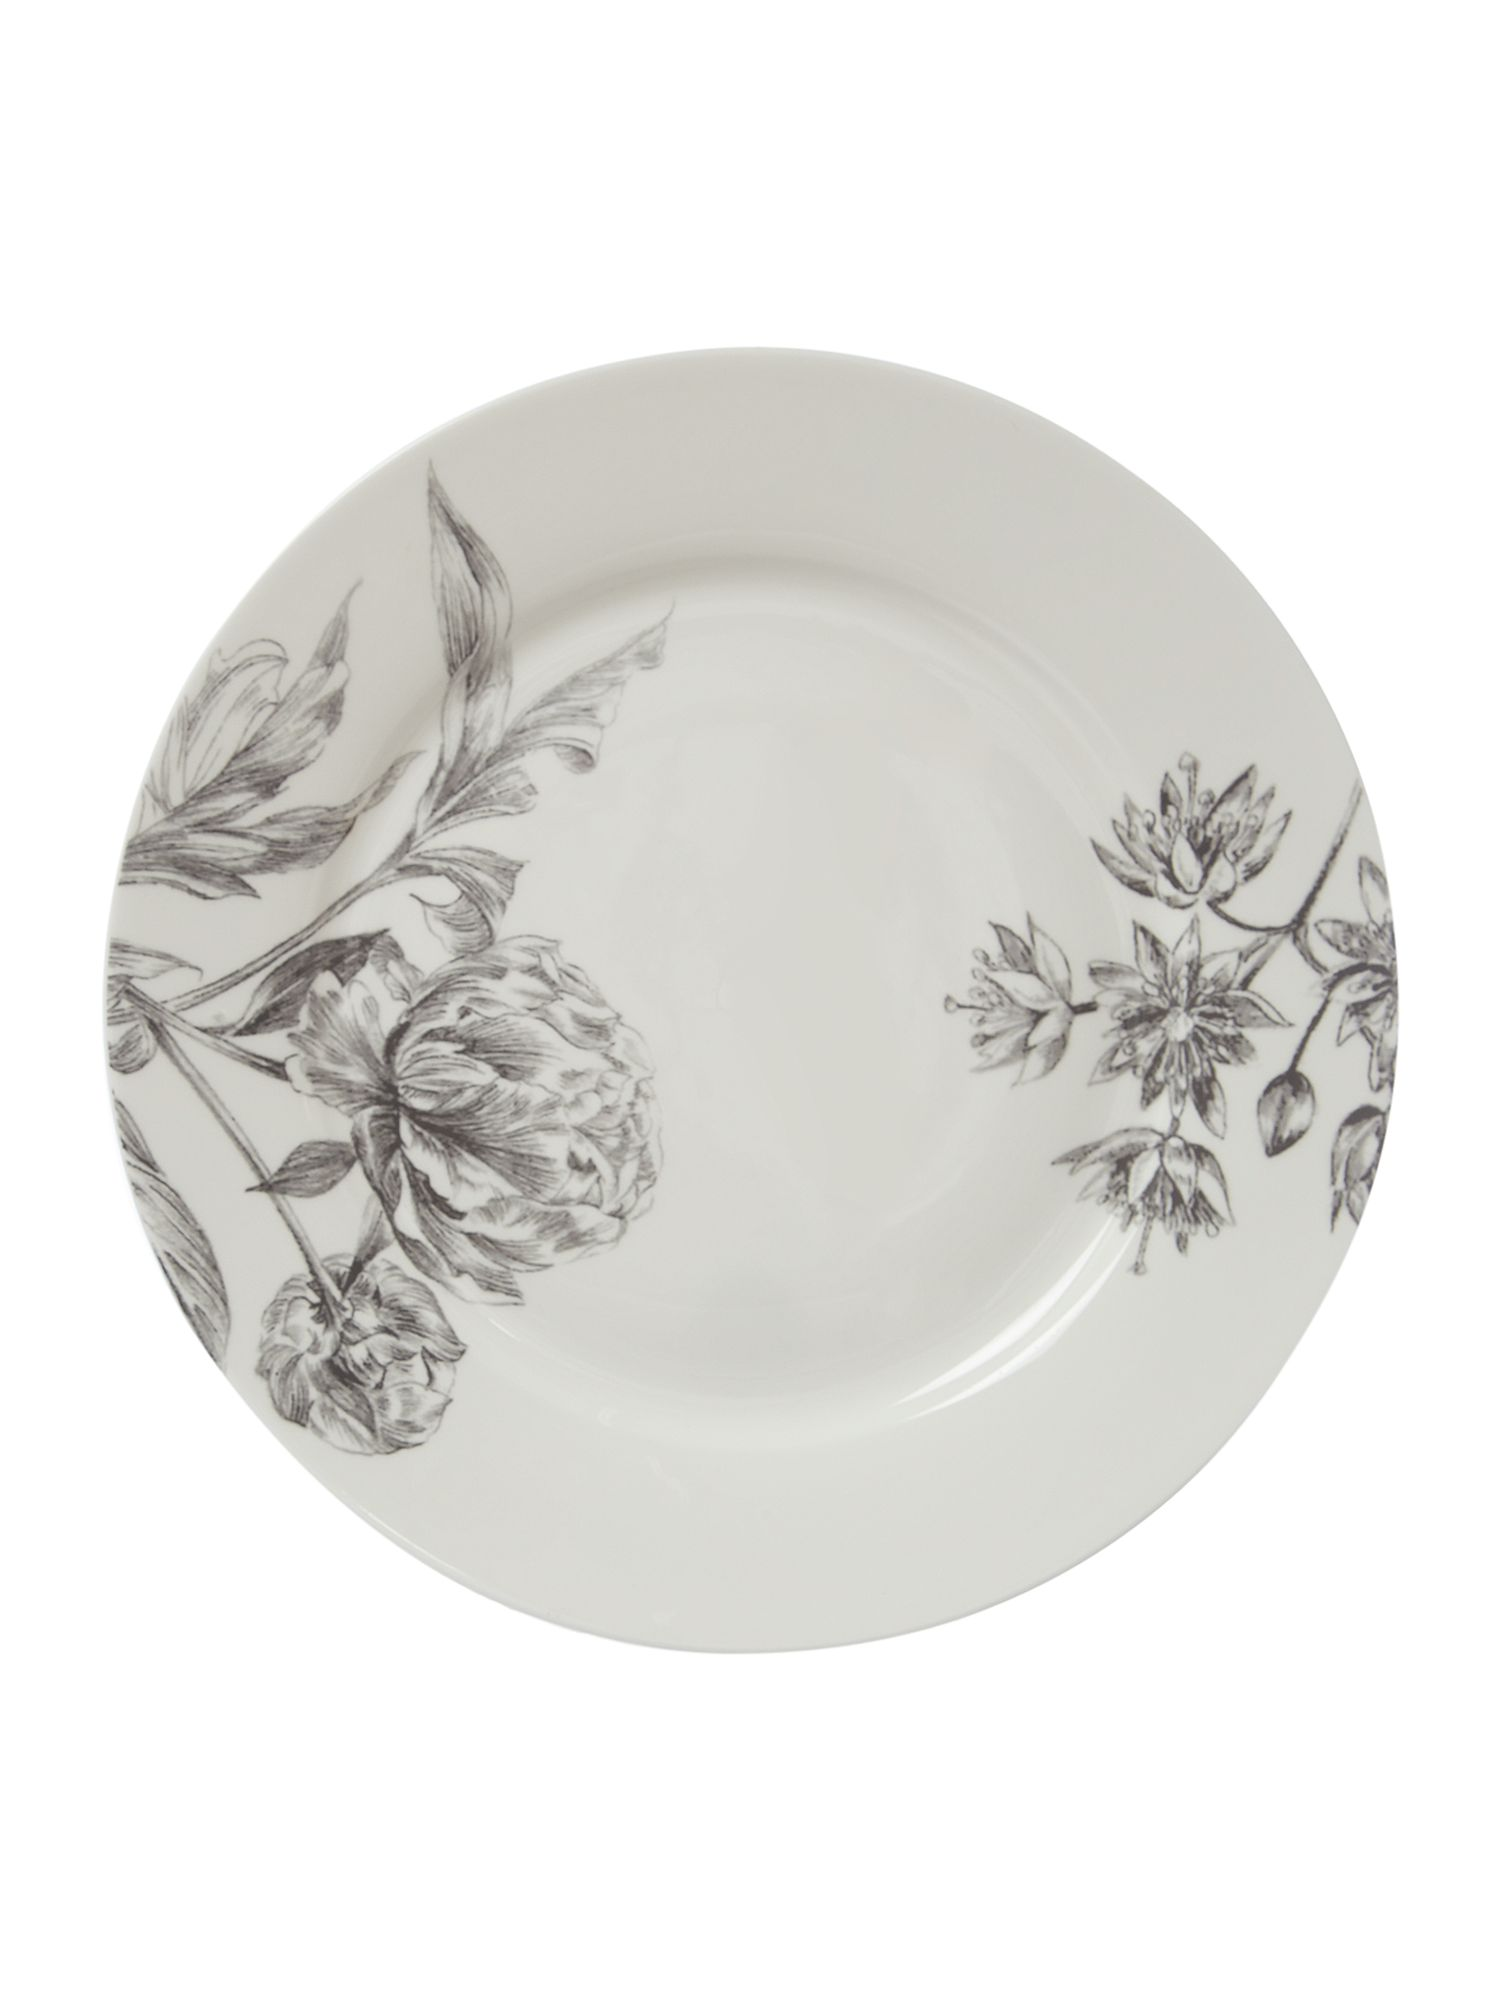 Winterbloom side plate